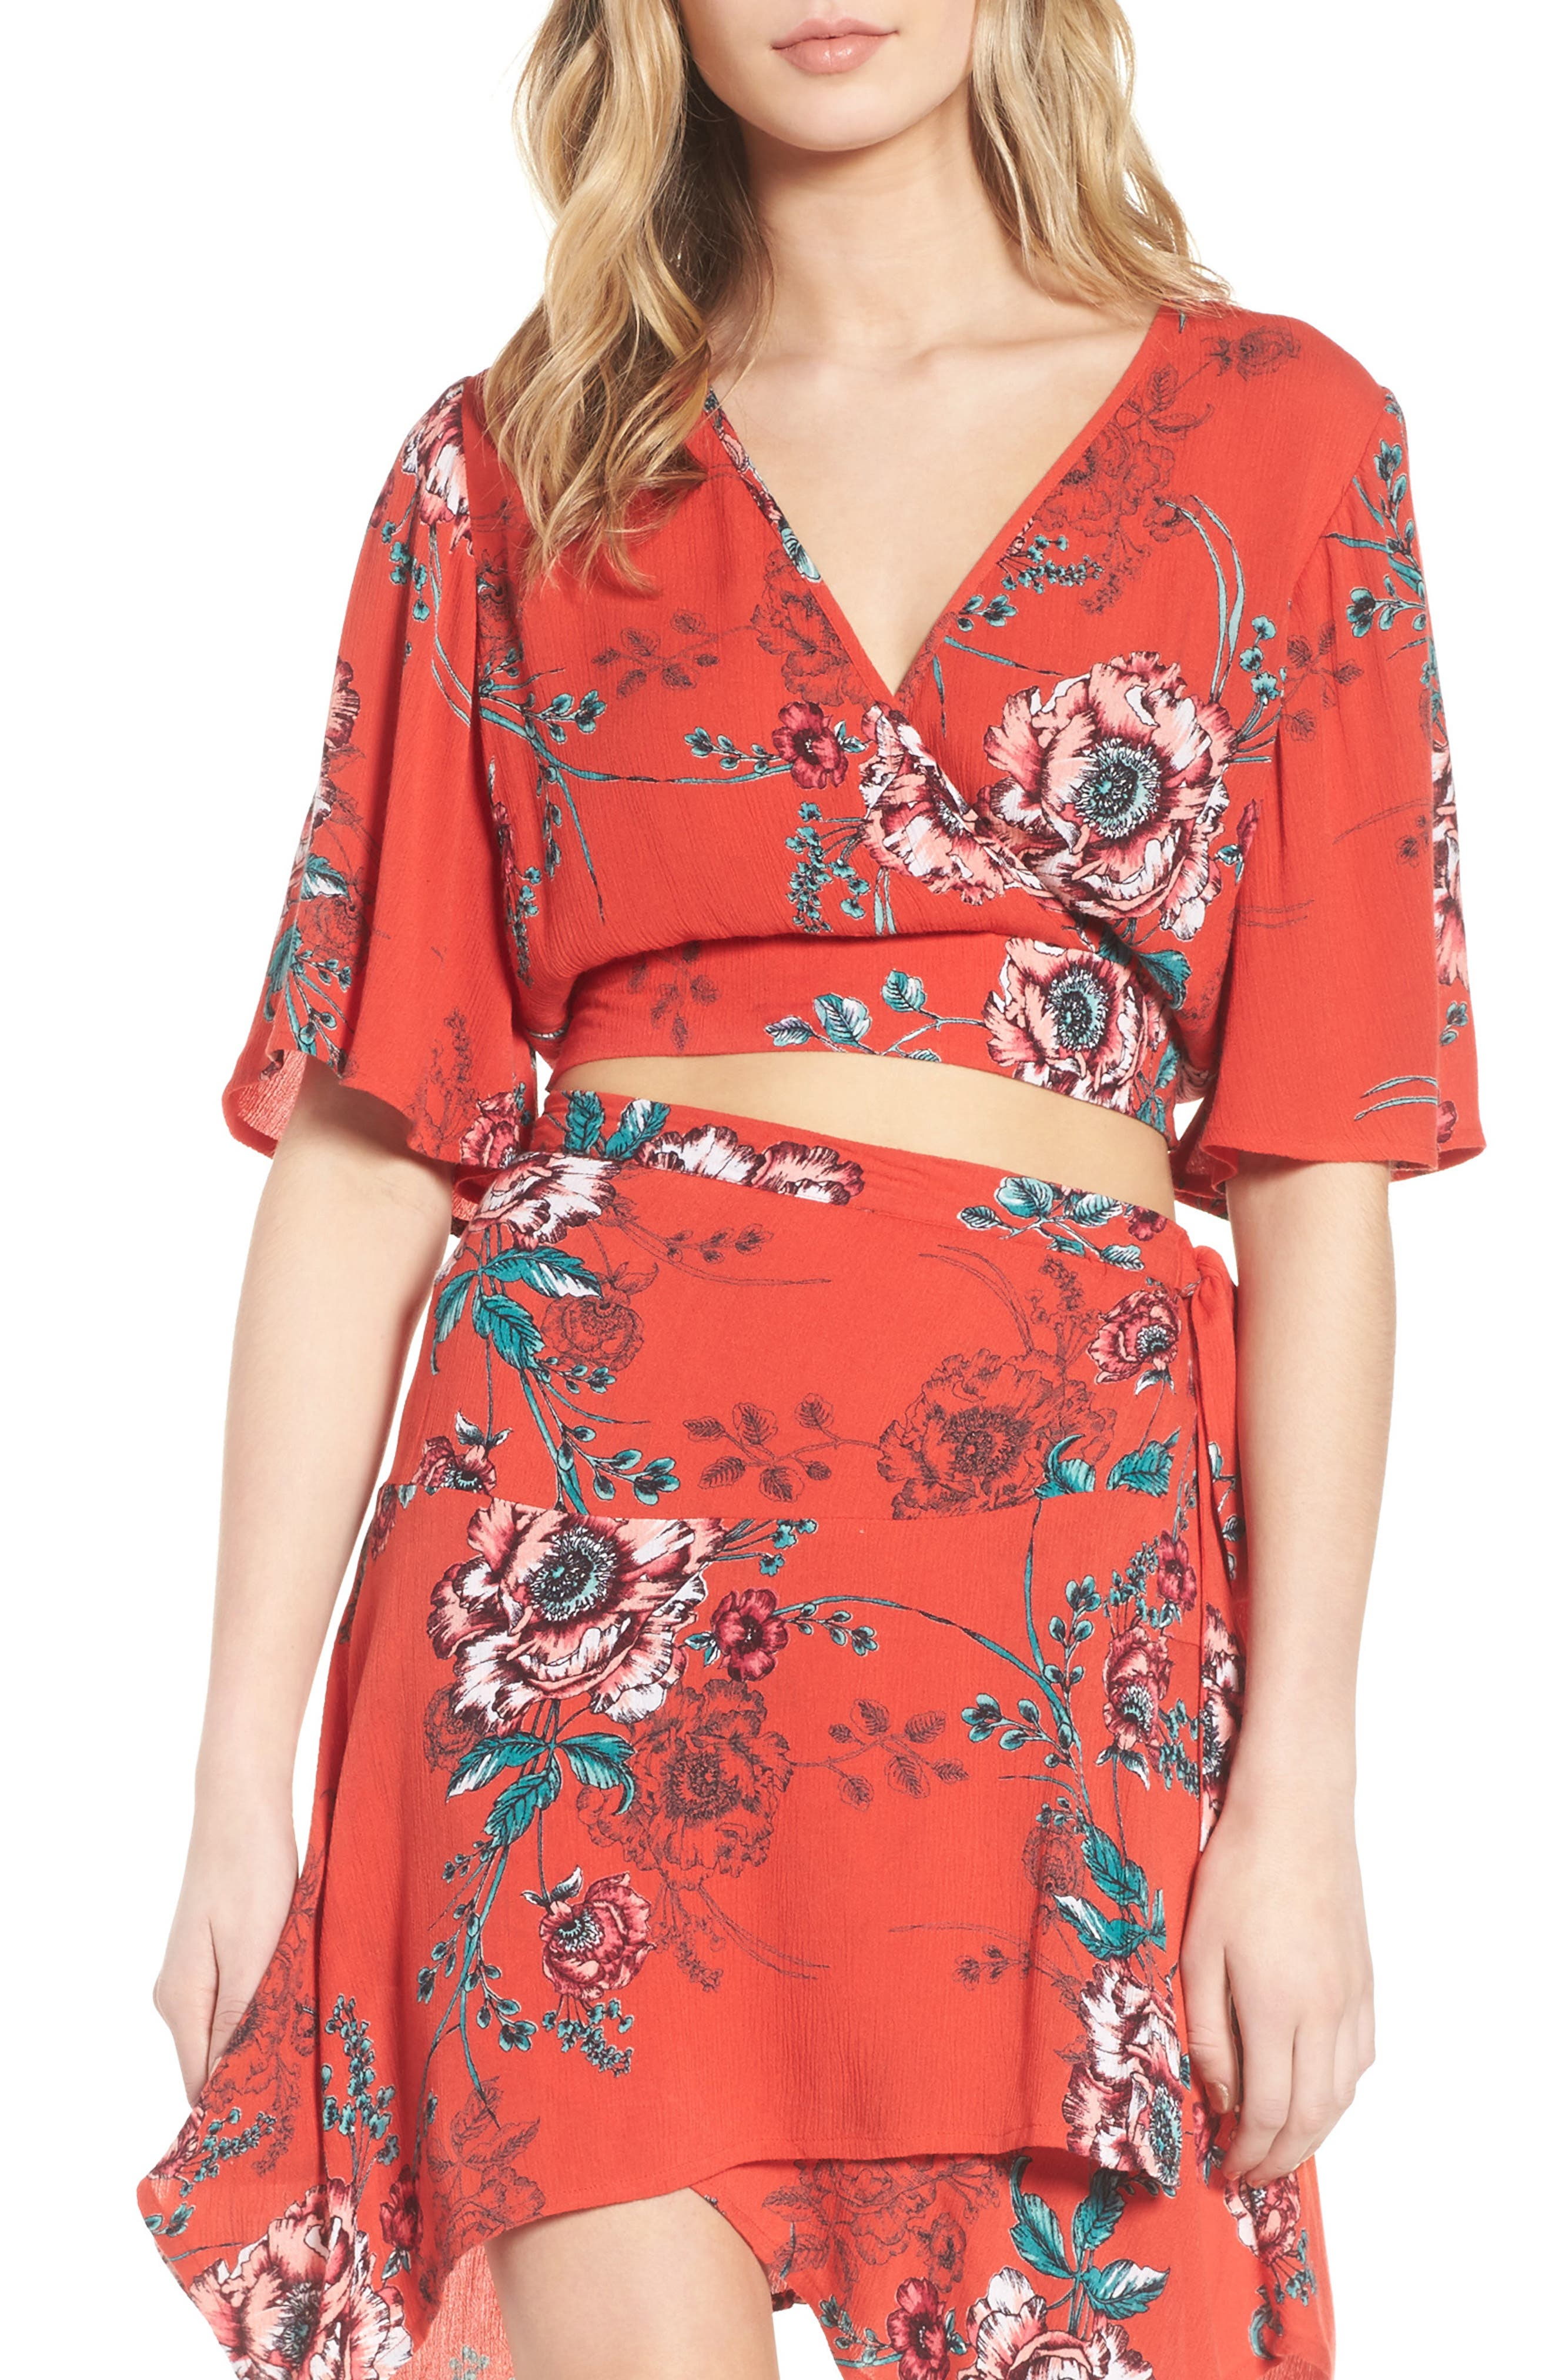 Shadow Floral Tie Back Crop Top,                             Main thumbnail 1, color,                             RED/ PEACH